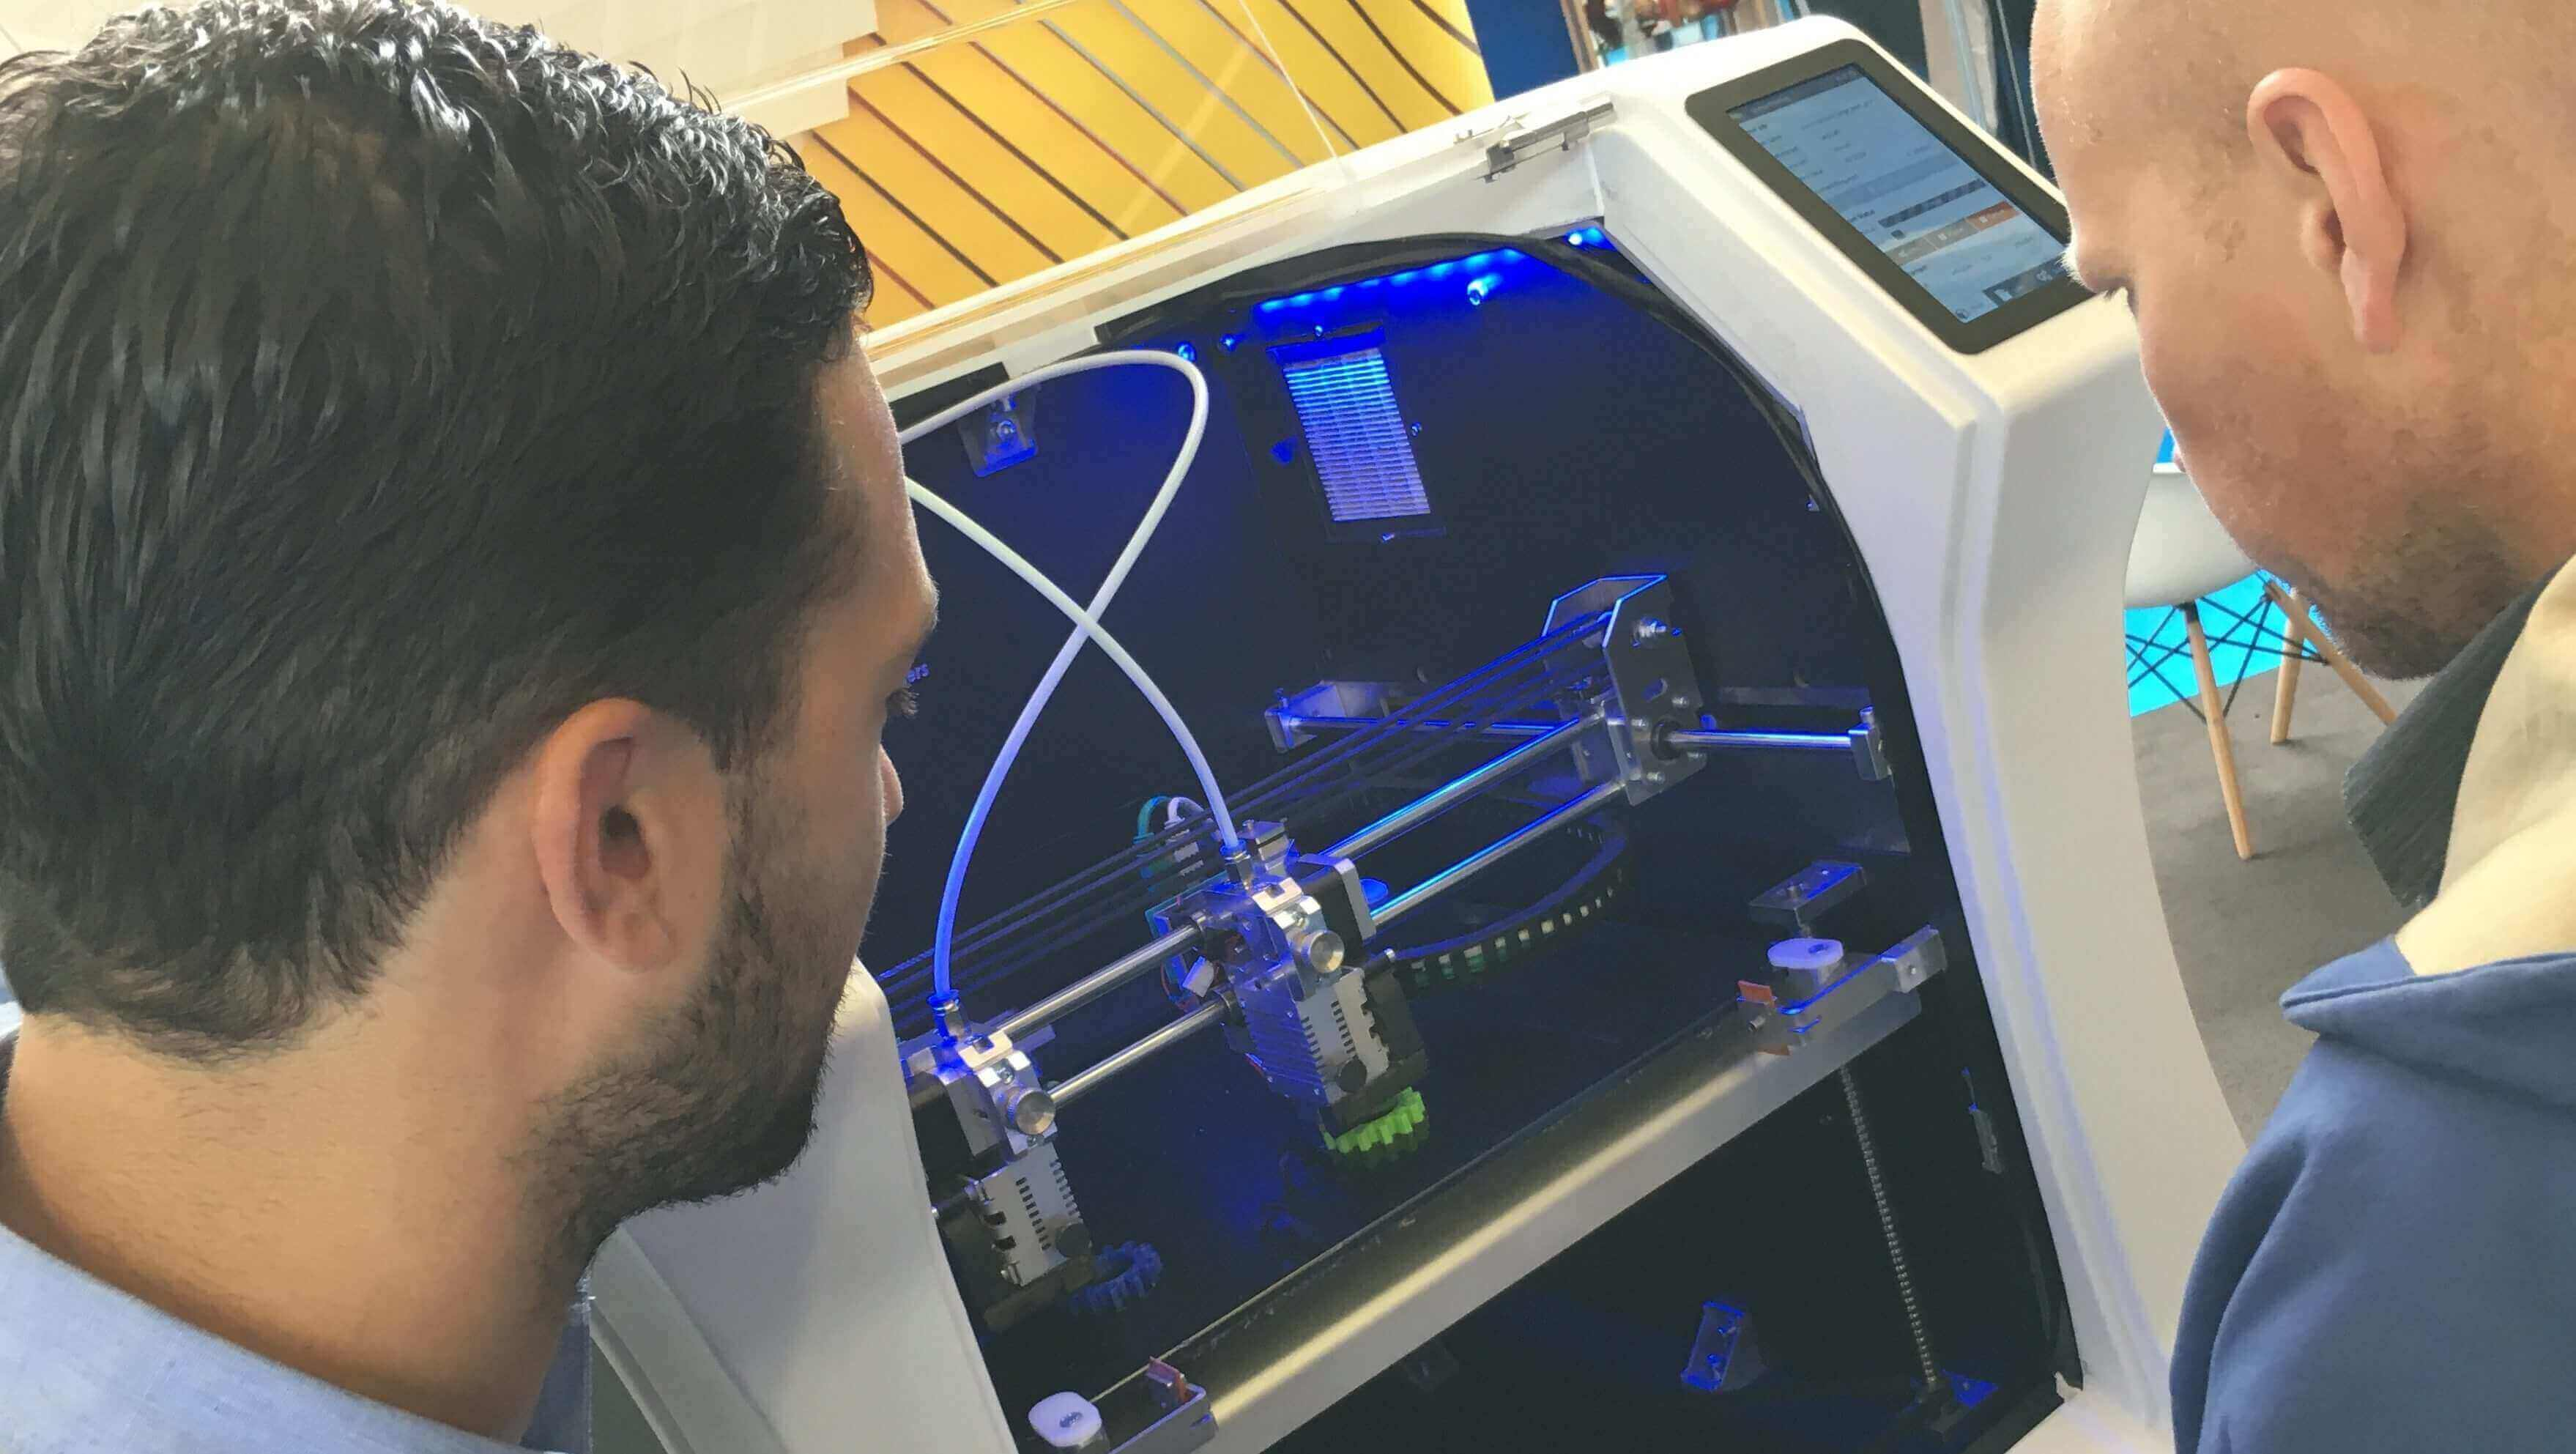 3 Things We Learned at the Additive Manufacturing Show | All3DP